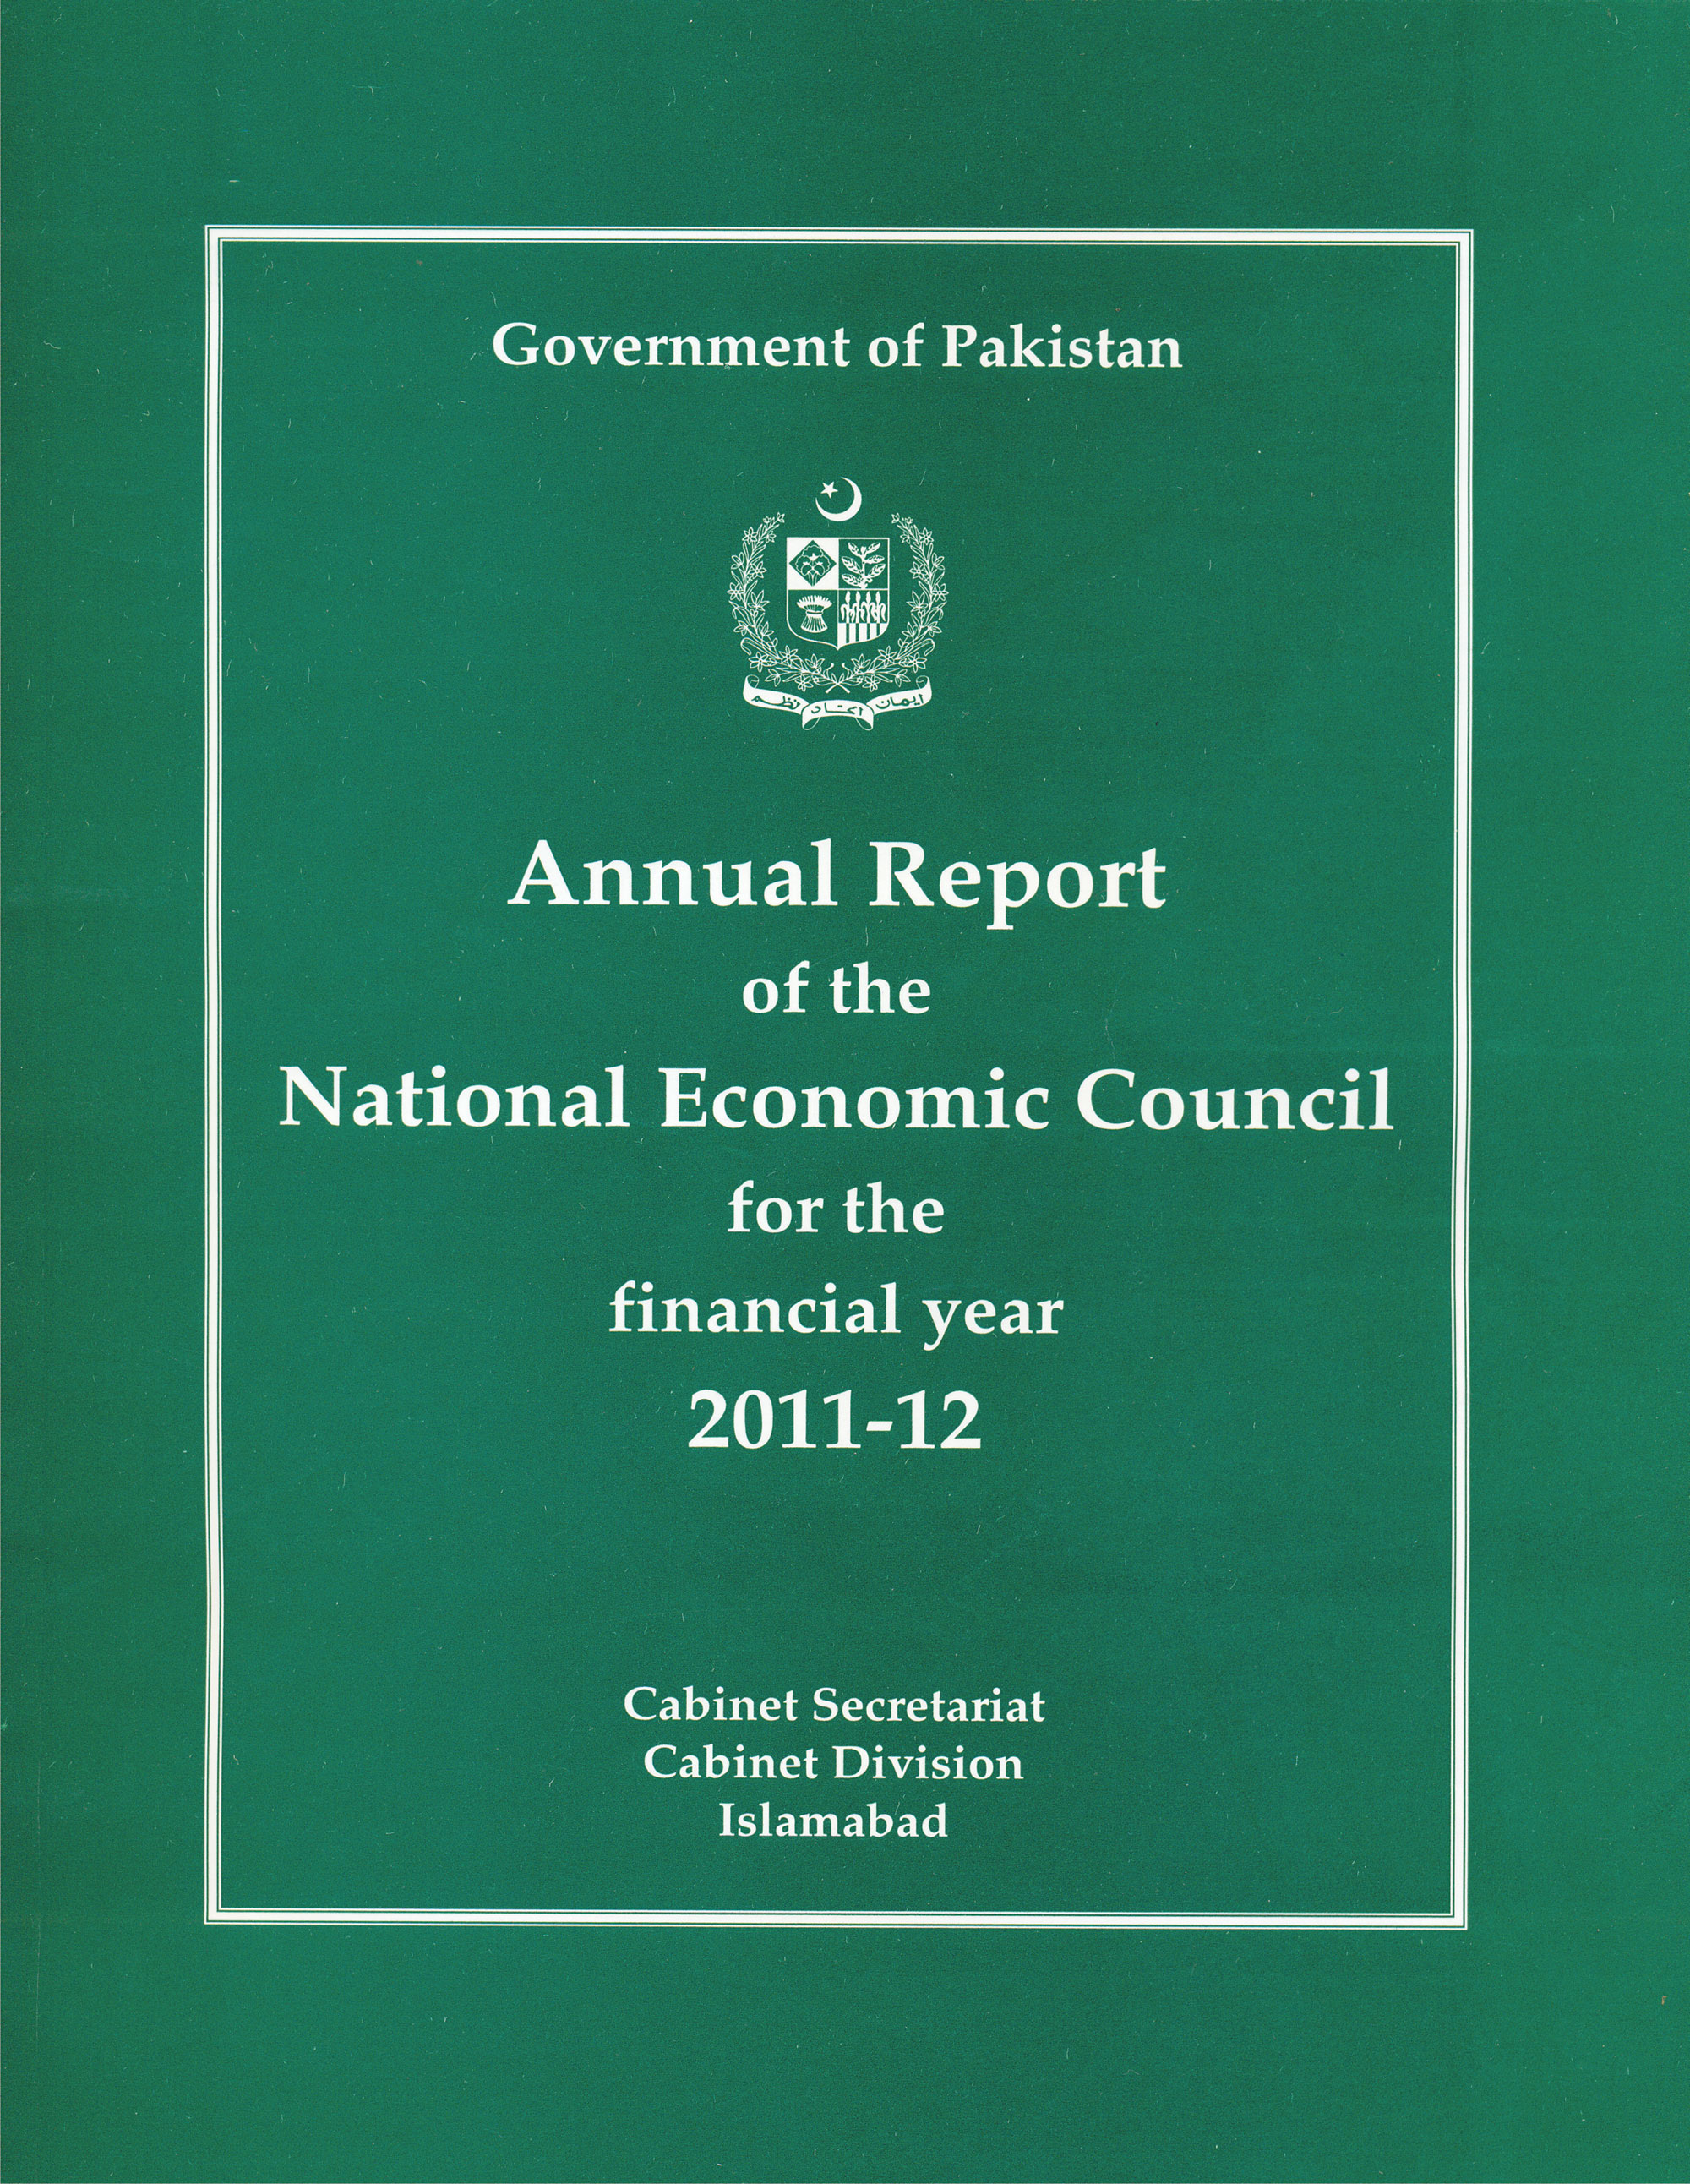 Annual Report of the National Economic Council for the Financial Year 2011-12: A review